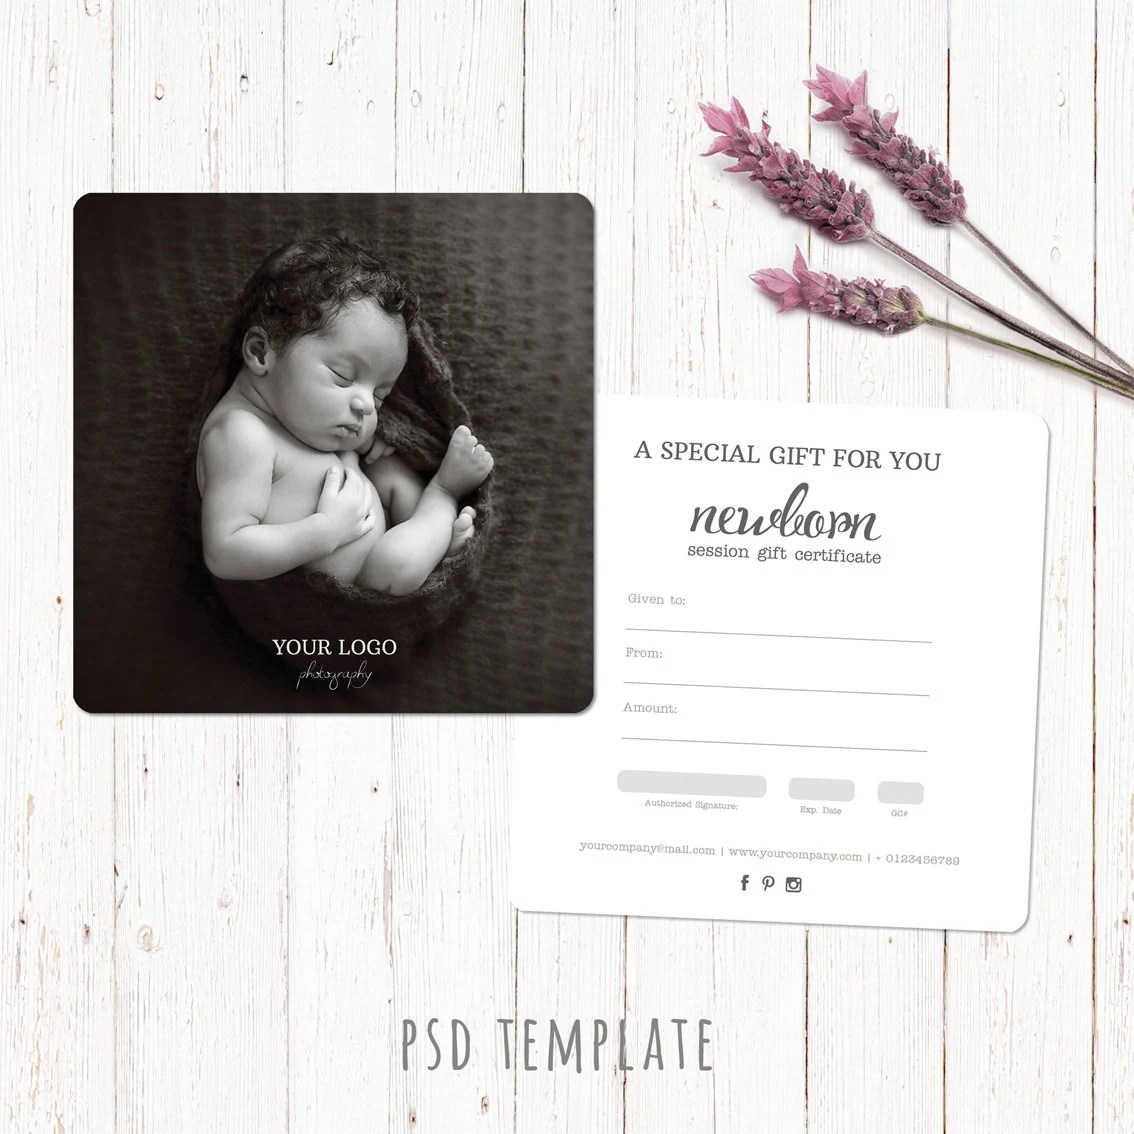 Gift Certificate Template Newborn Session Photography Gift